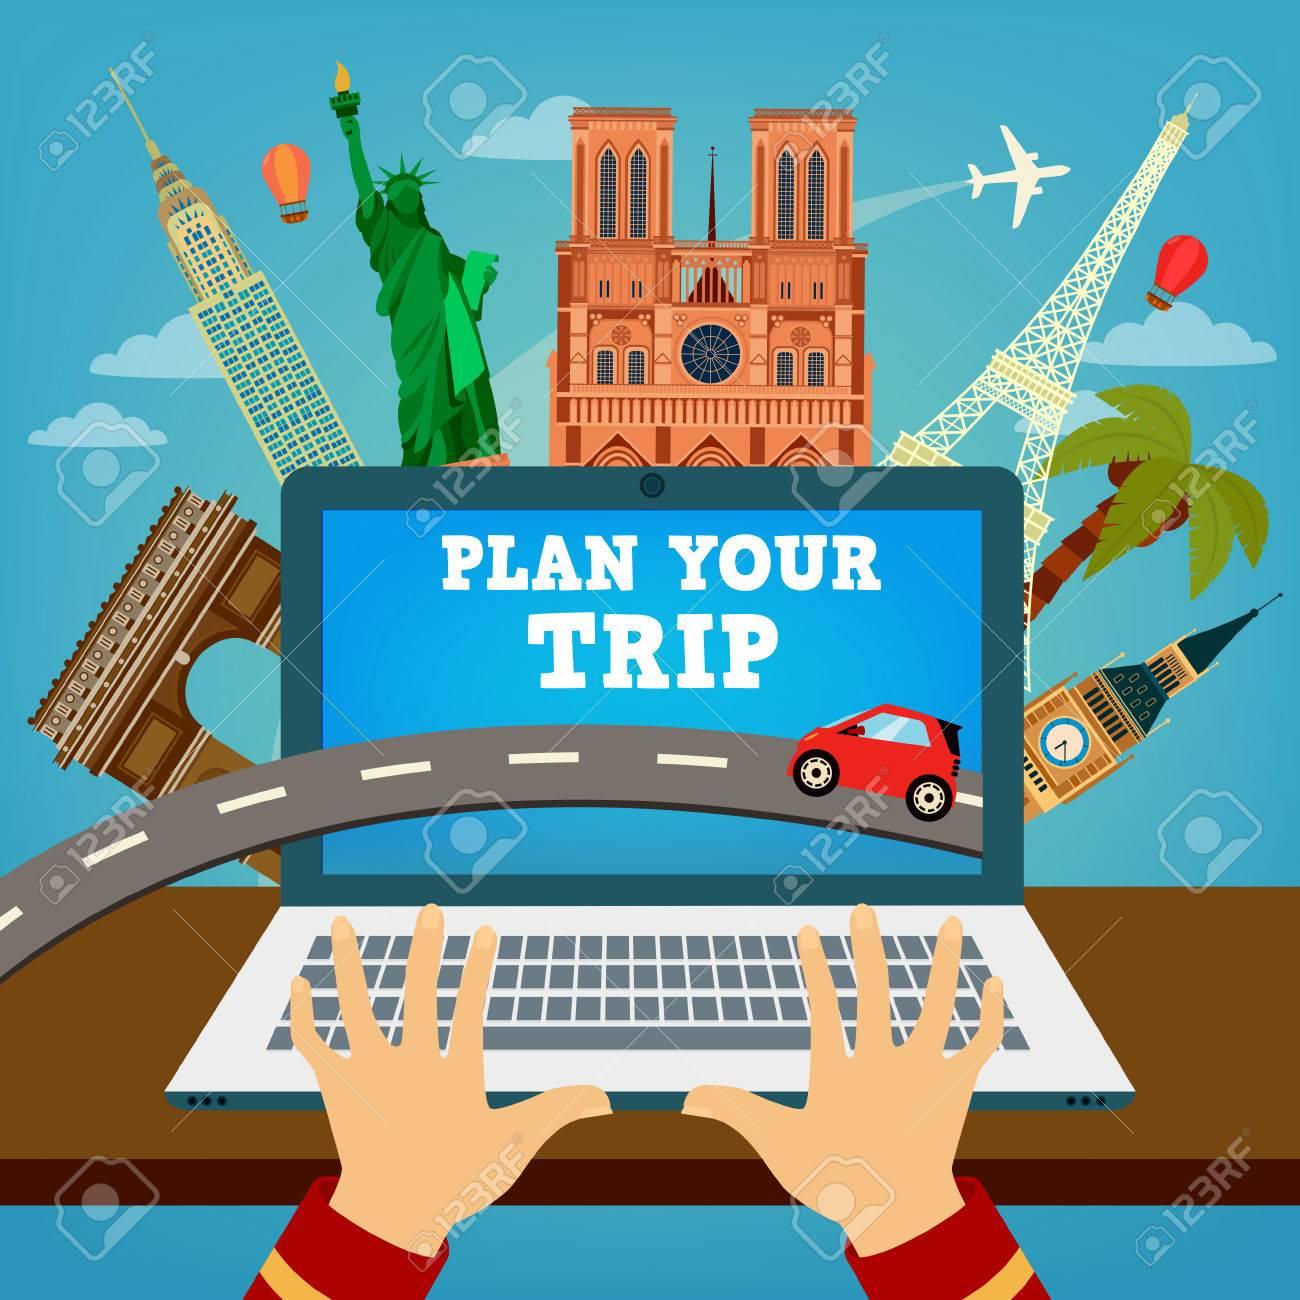 Trip Travel Plan Your Trip Travel Banner Time To Travel Vacation Planning